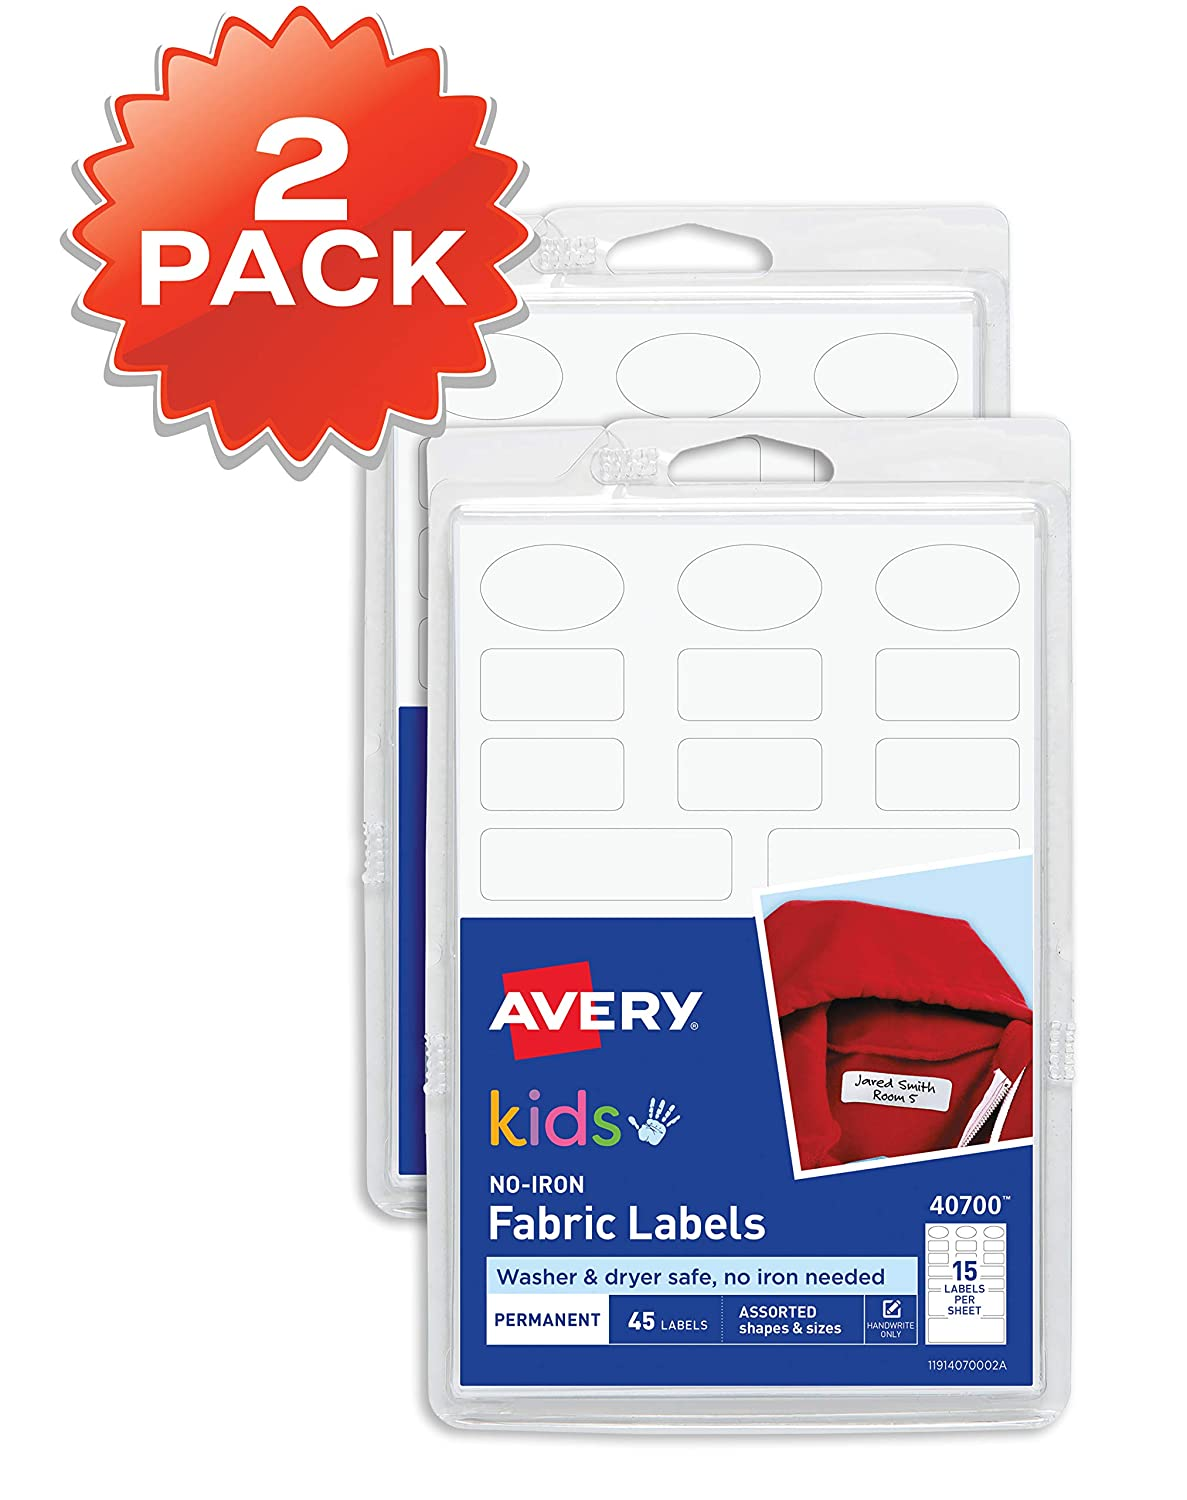 40700 Washer /& Dryer Safe 90 Labels Assorted Shapes /& Sizes, Avery No-Iron Kids Clothing Labels 2-Pack